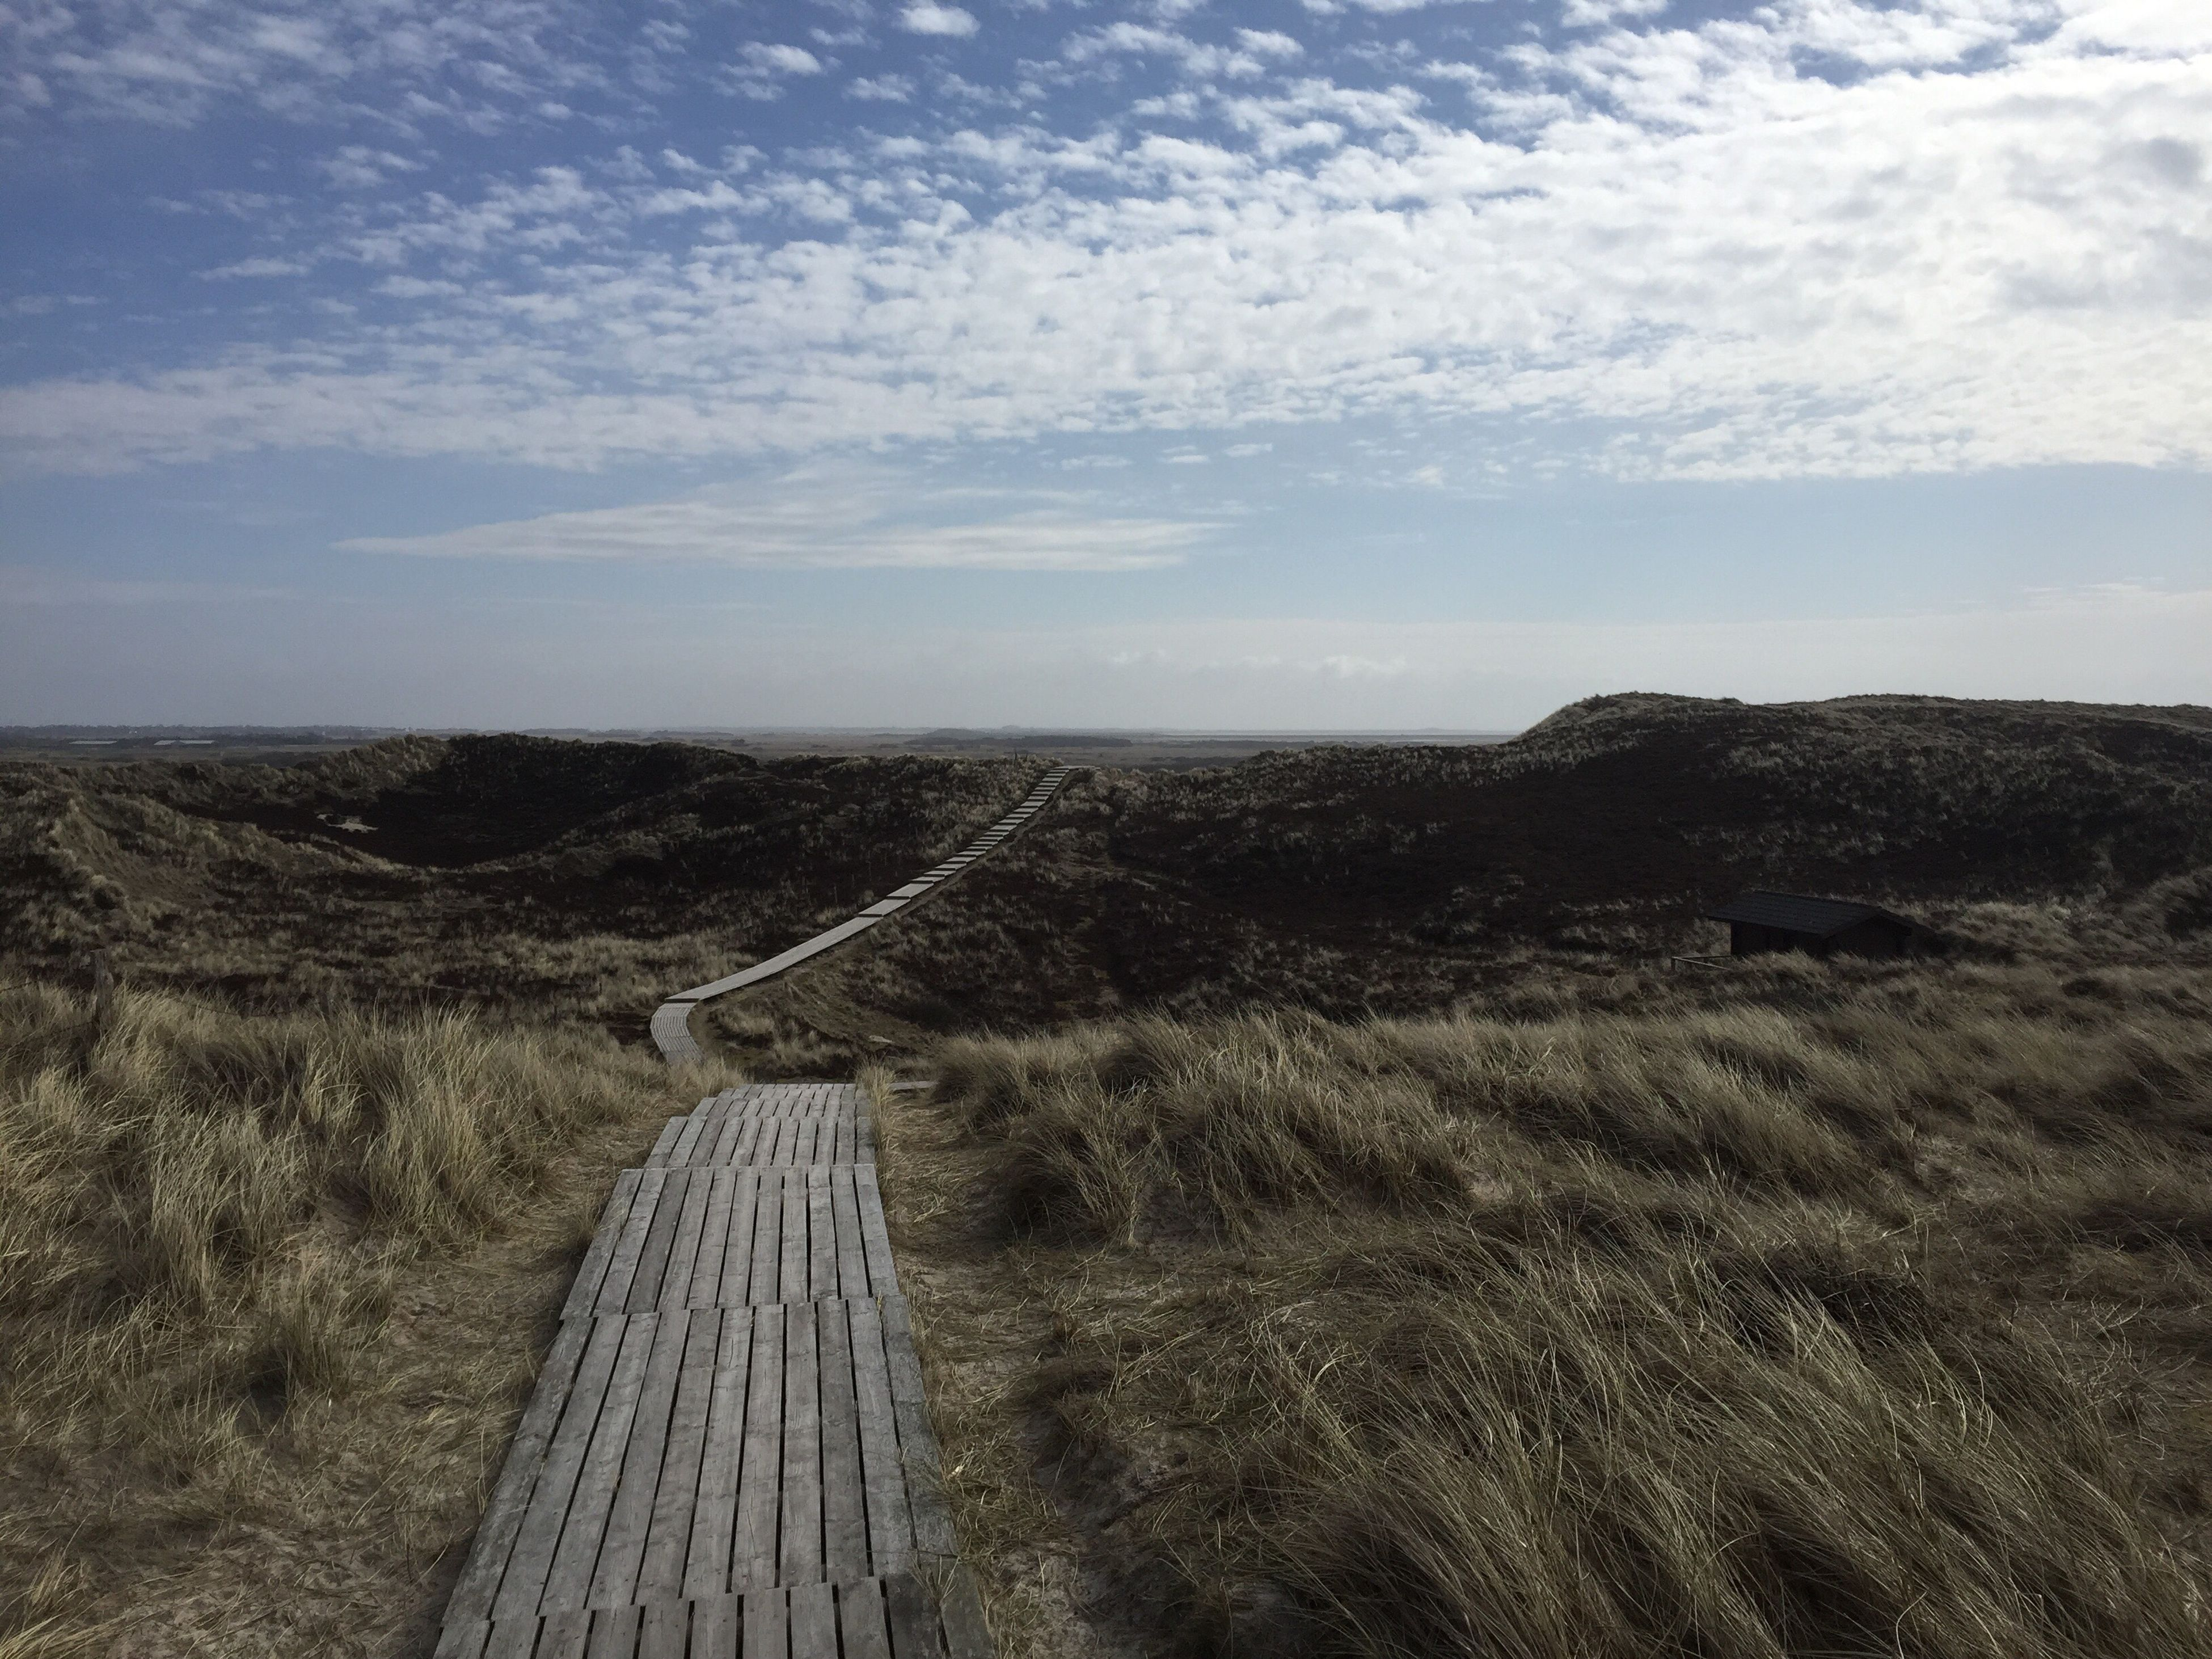 the way forward, tranquility, sky, tranquil scene, pathway, long, cloud - sky, narrow, footpath, nature, scenics, field, boardwalk, walkway, non-urban scene, day, growth, outdoors, blue, remote, beauty in nature, sea, solitude, leading, surface level